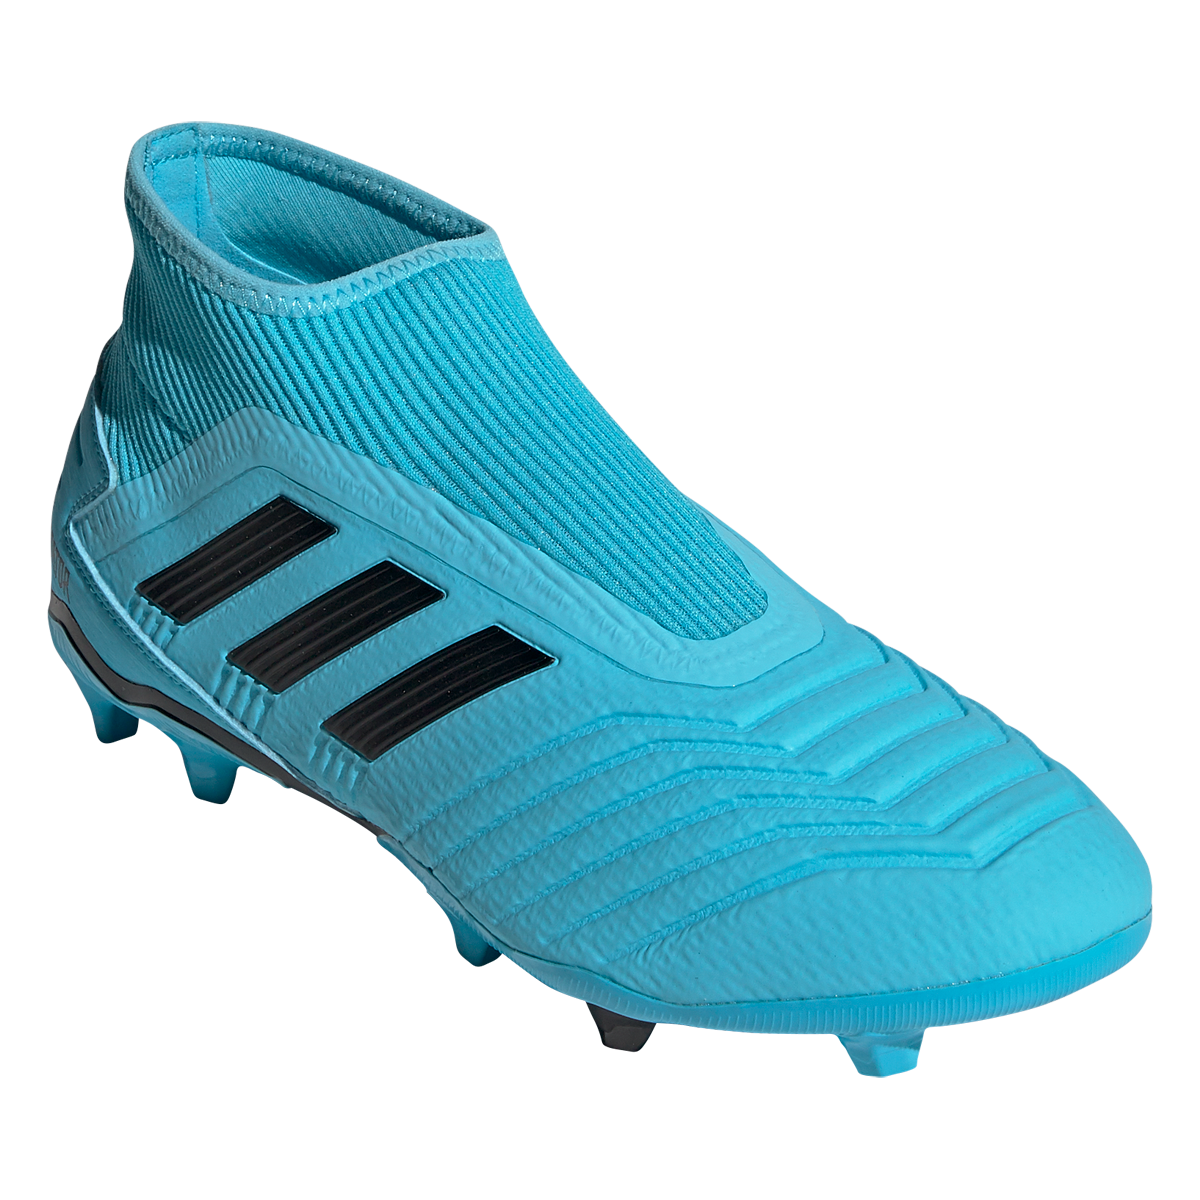 Predator 19.3 Laceless Firm Ground Cleats in 2019 | Adidas